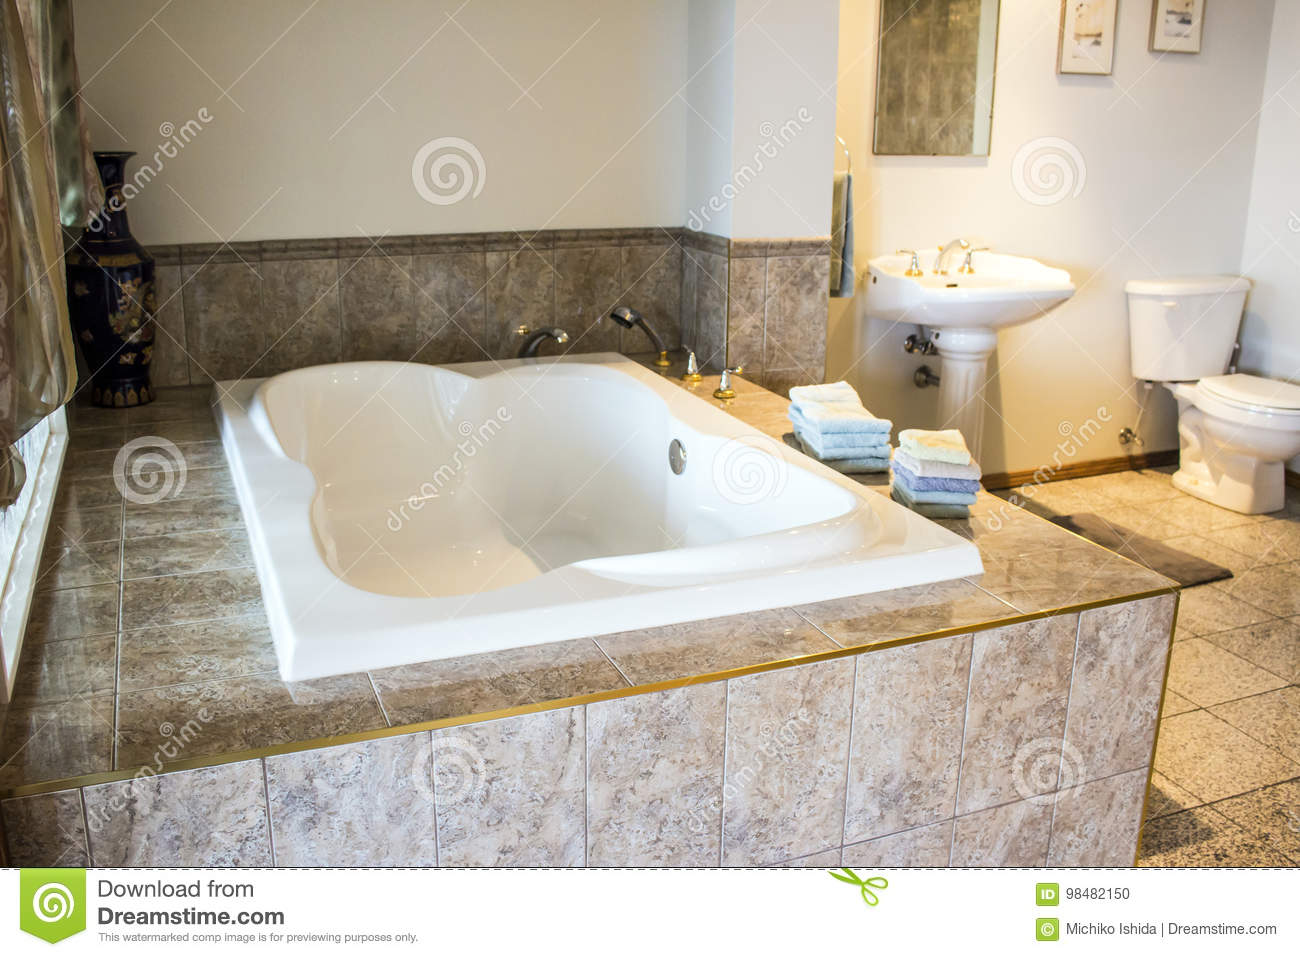 salle de bains luxueuse de baignoire photo stock image du jacuzzi beaut 98482150. Black Bedroom Furniture Sets. Home Design Ideas